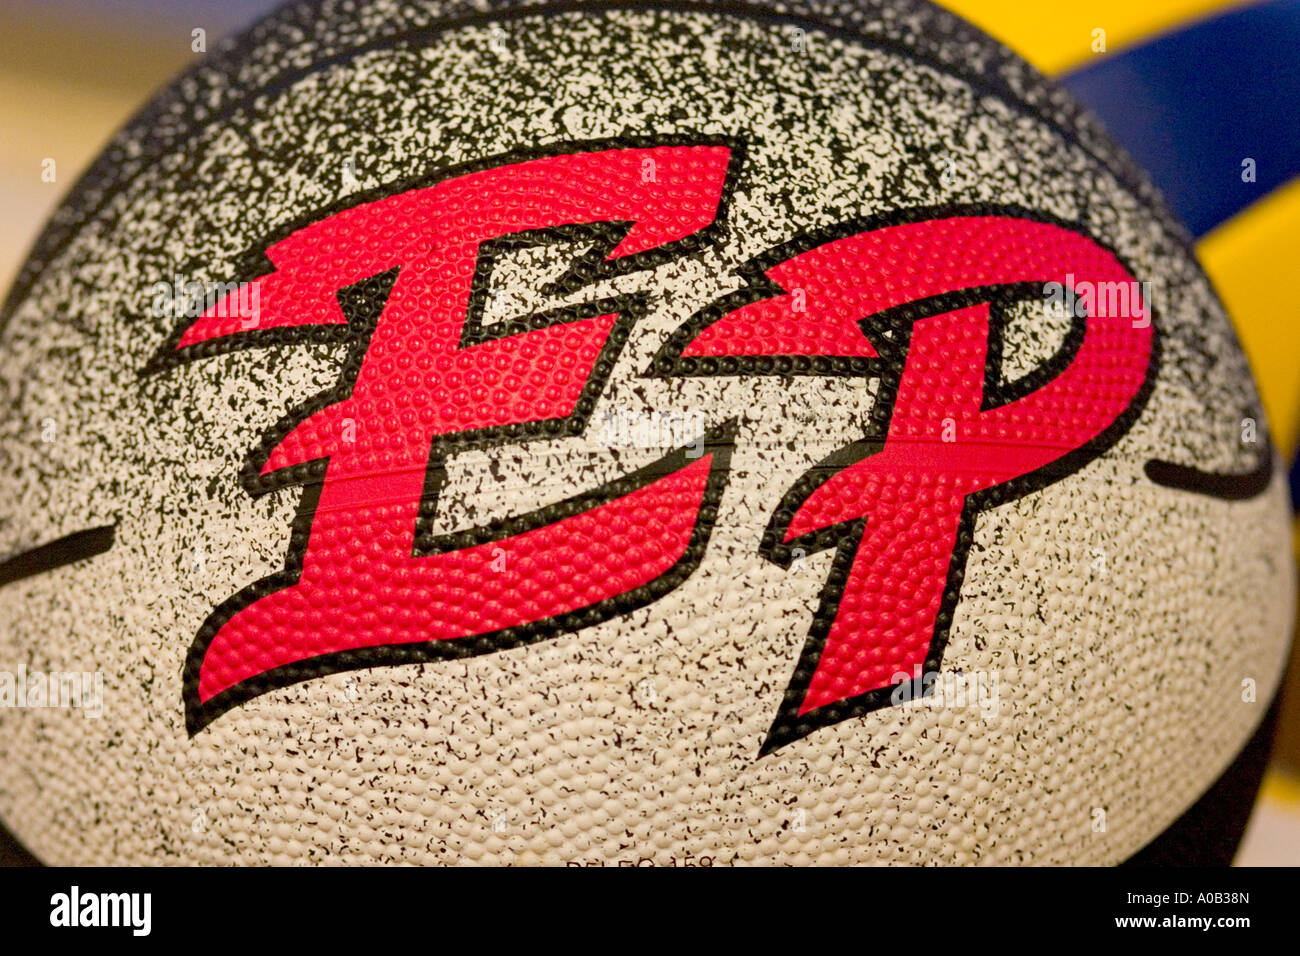 Artistic colorful EP symbol on gym ball could be for Eden Prairie School. St Paul Minnesota MN USA - Stock Image